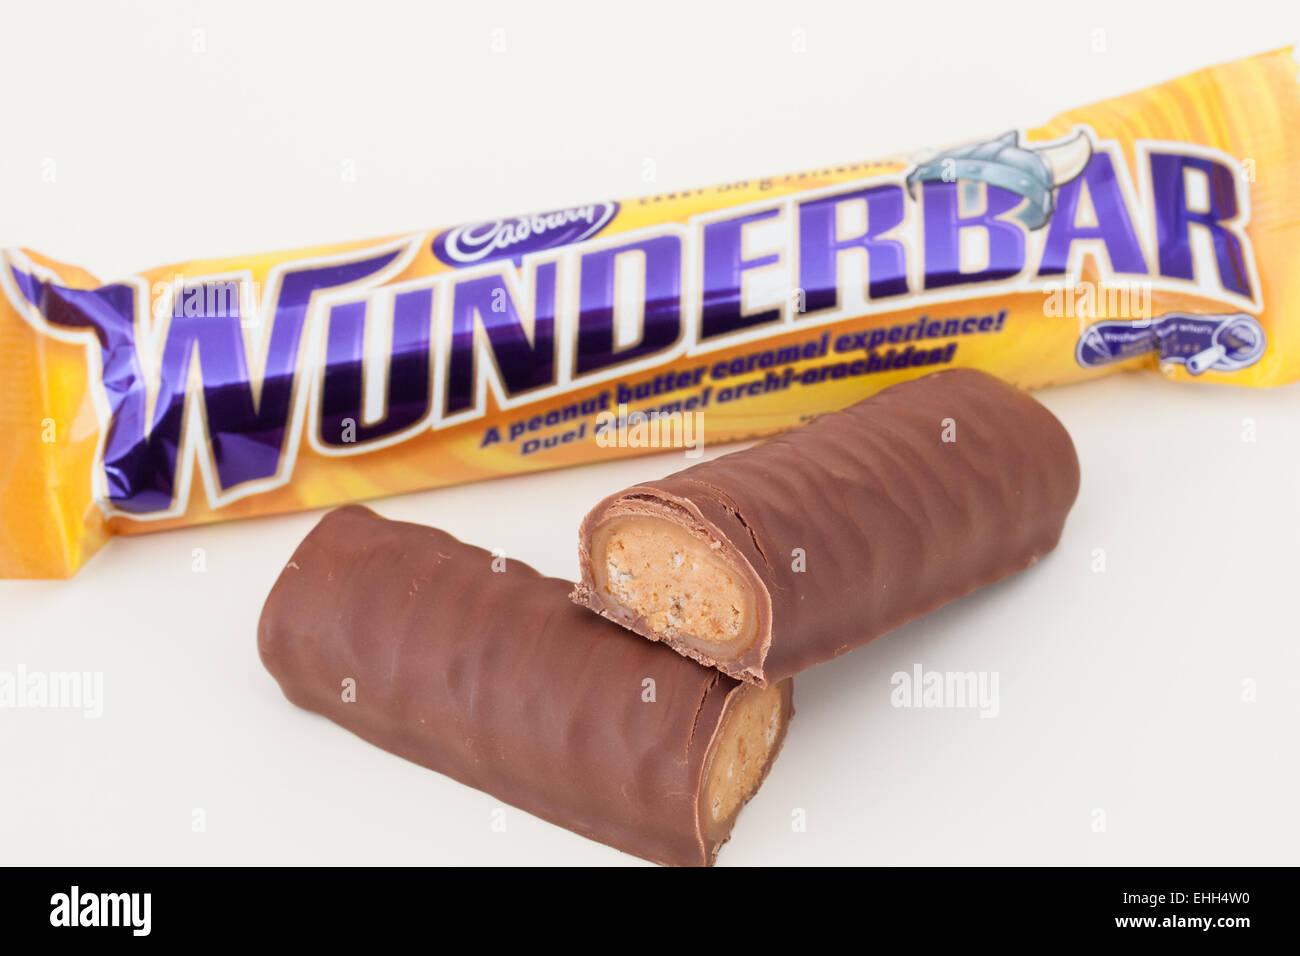 a-cadbury-wunderbar-chocolate-bar-which-